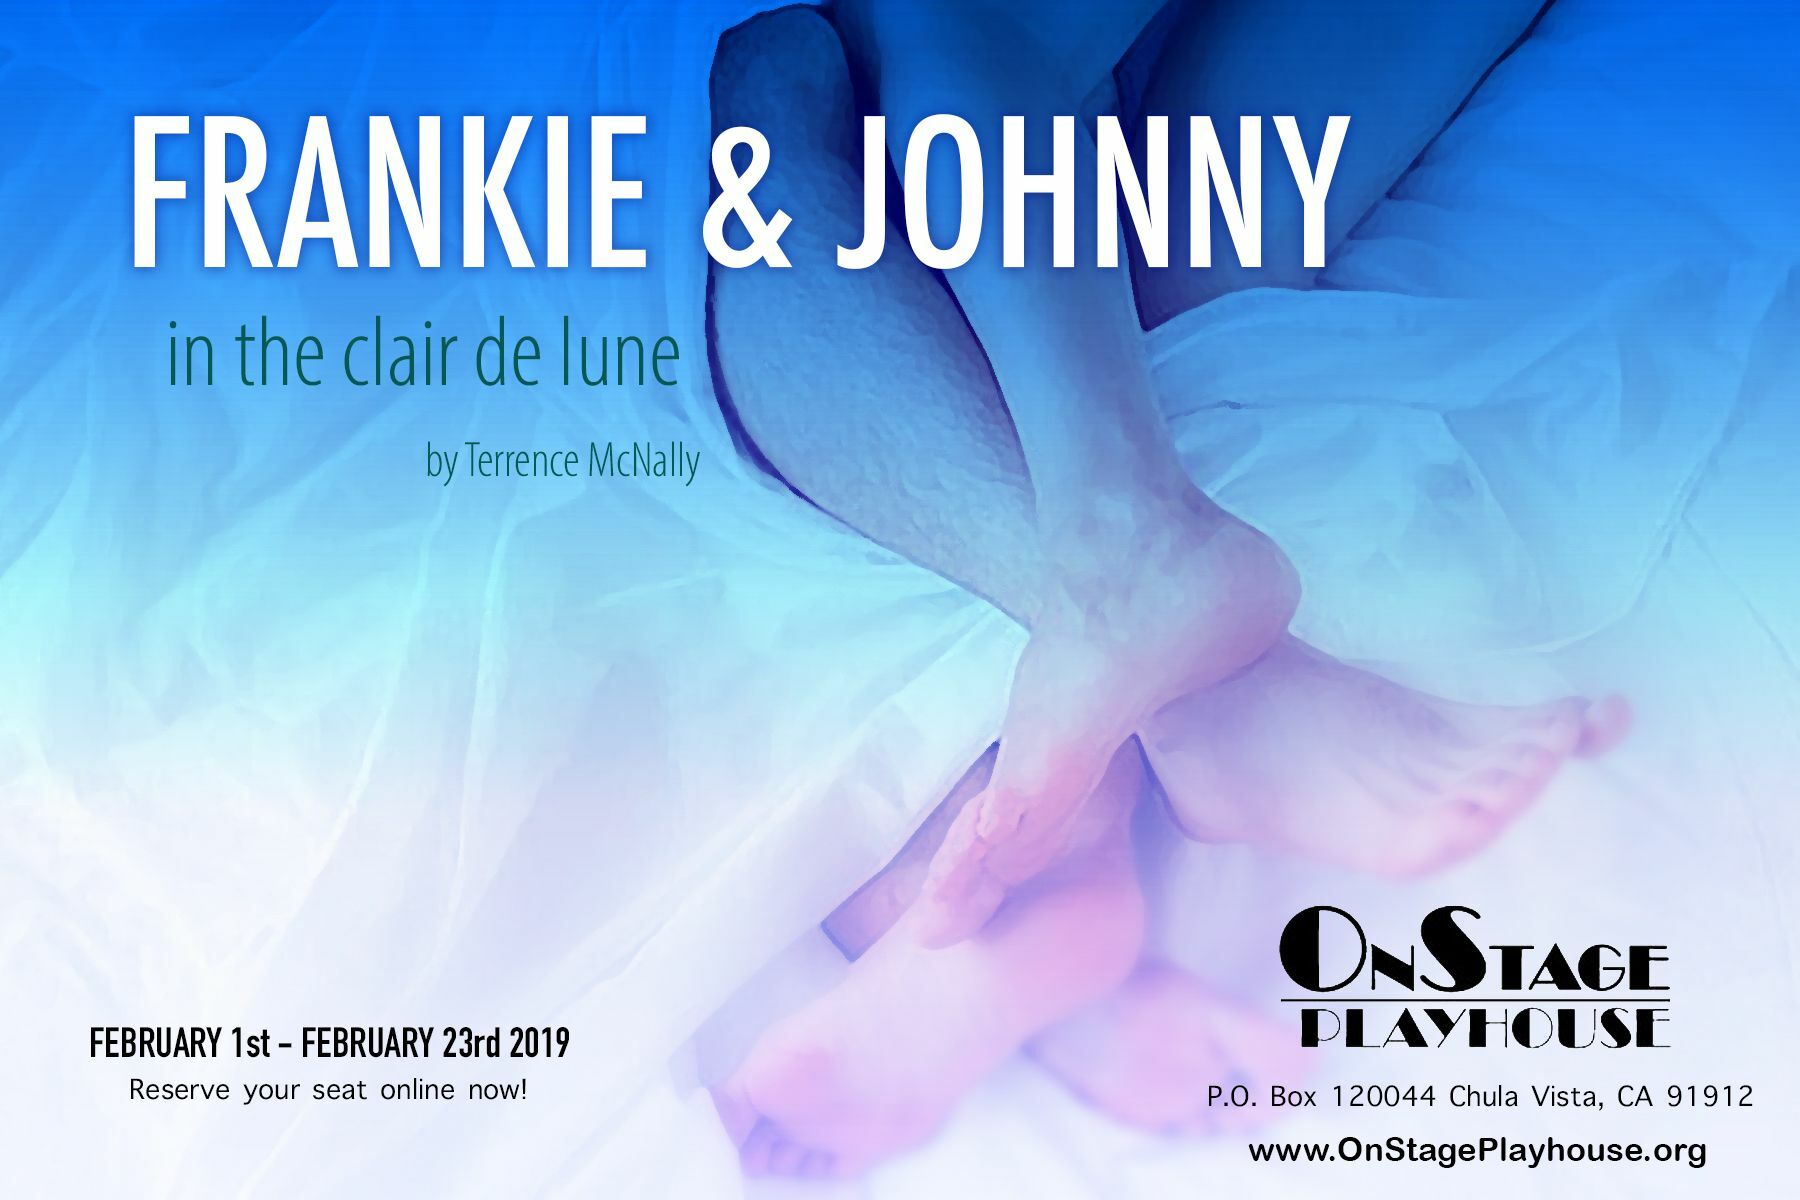 Frankie and Johnny at the Clair de Lune